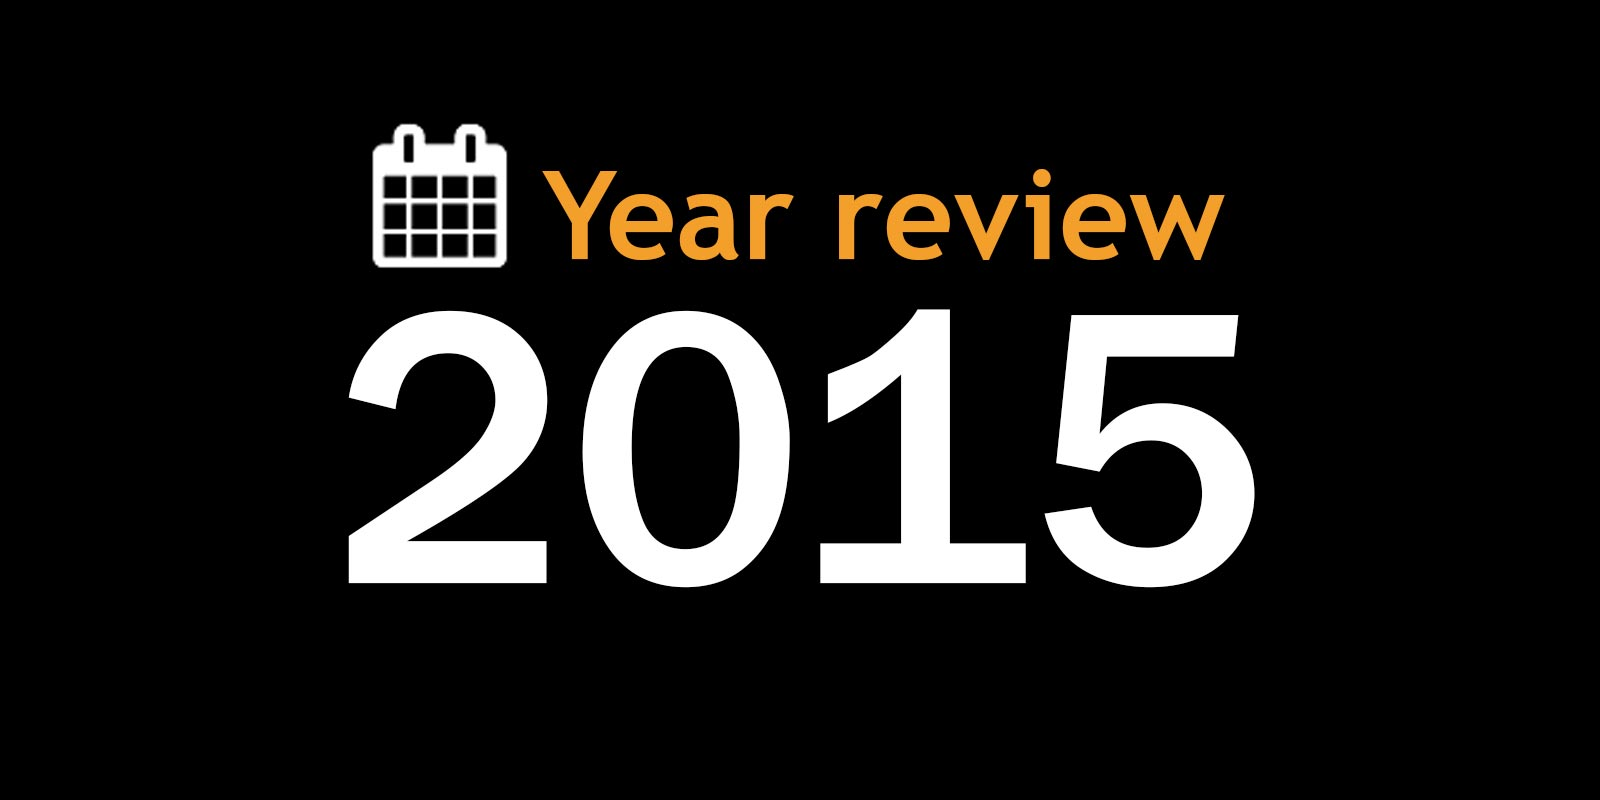 Year review 2015